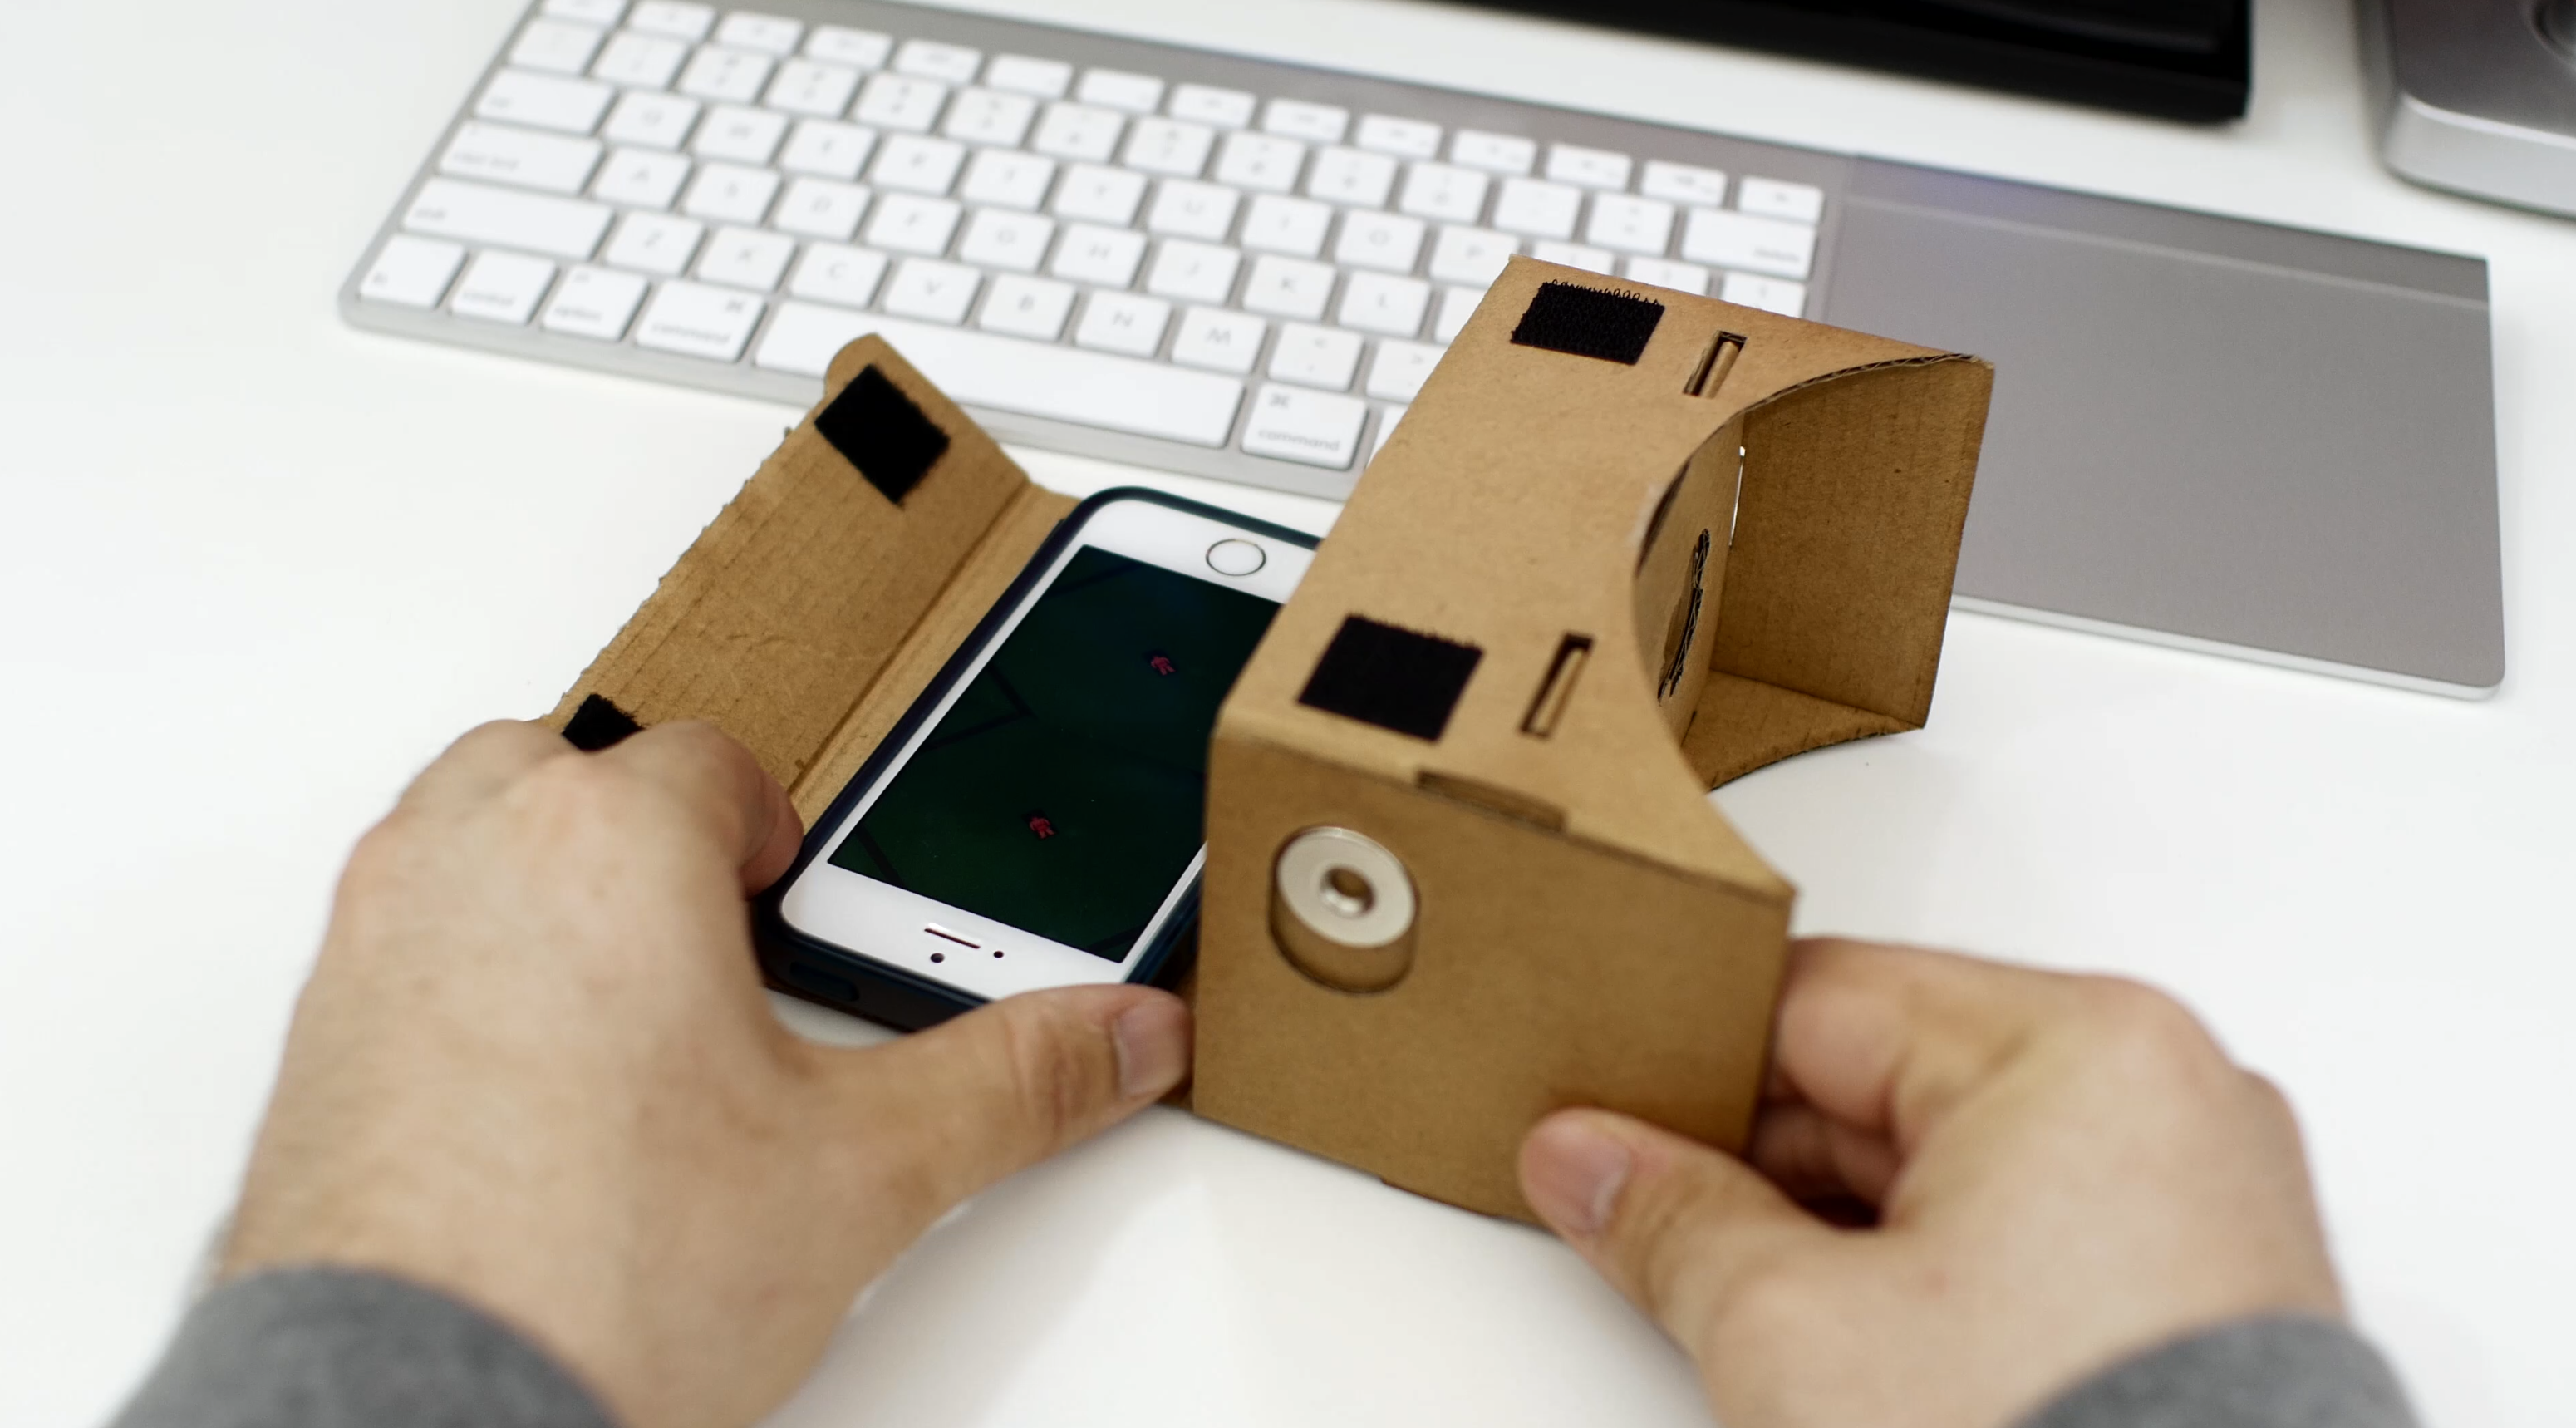 c4af1c1b07a Makeshift Apple VR headset  How to use Google Cardboard with an ...